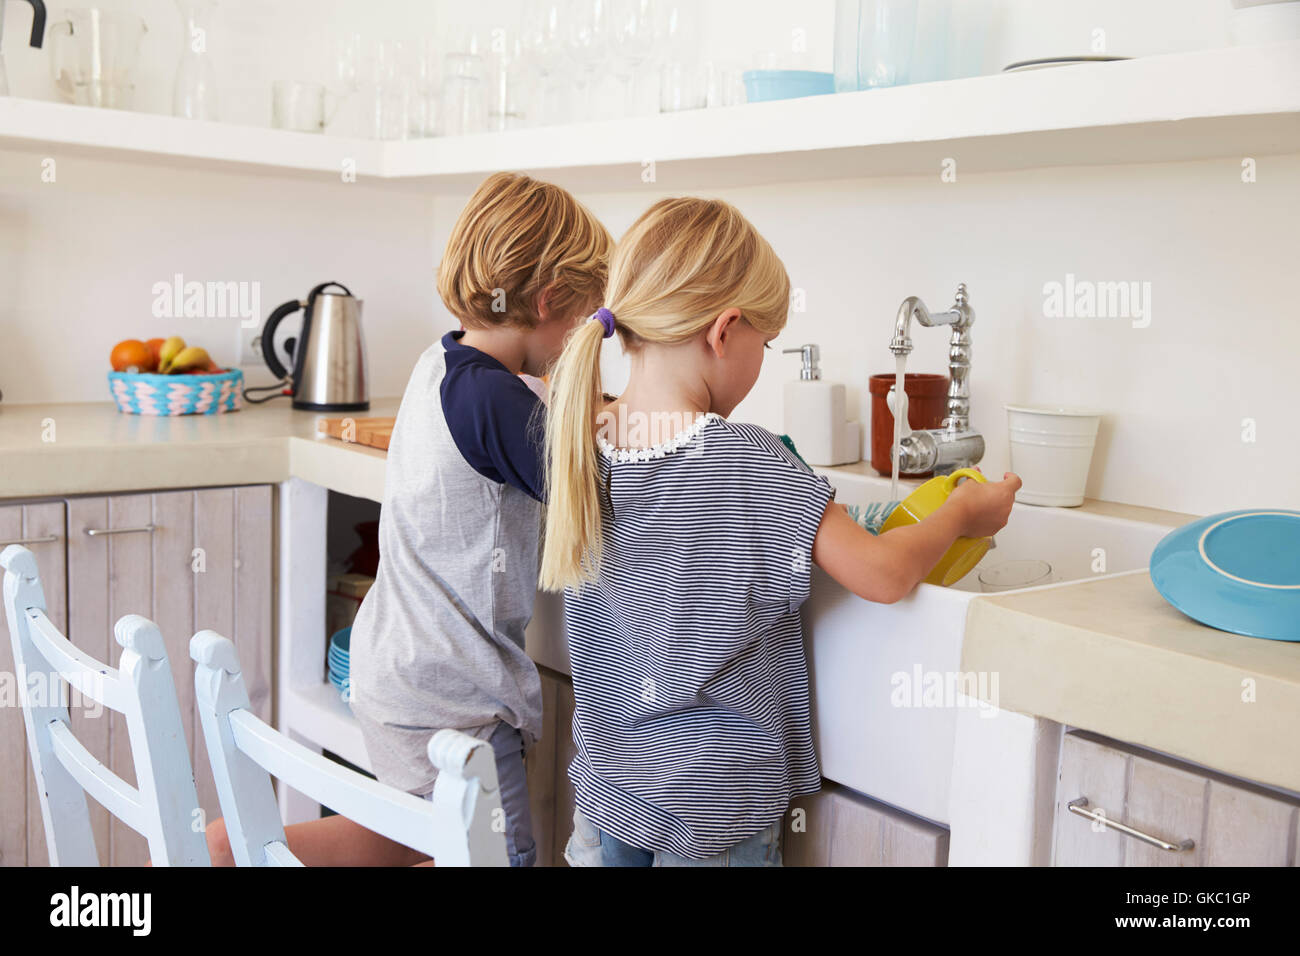 Brother and sister kneeling at sink to wash up in kitchen - Stock Image